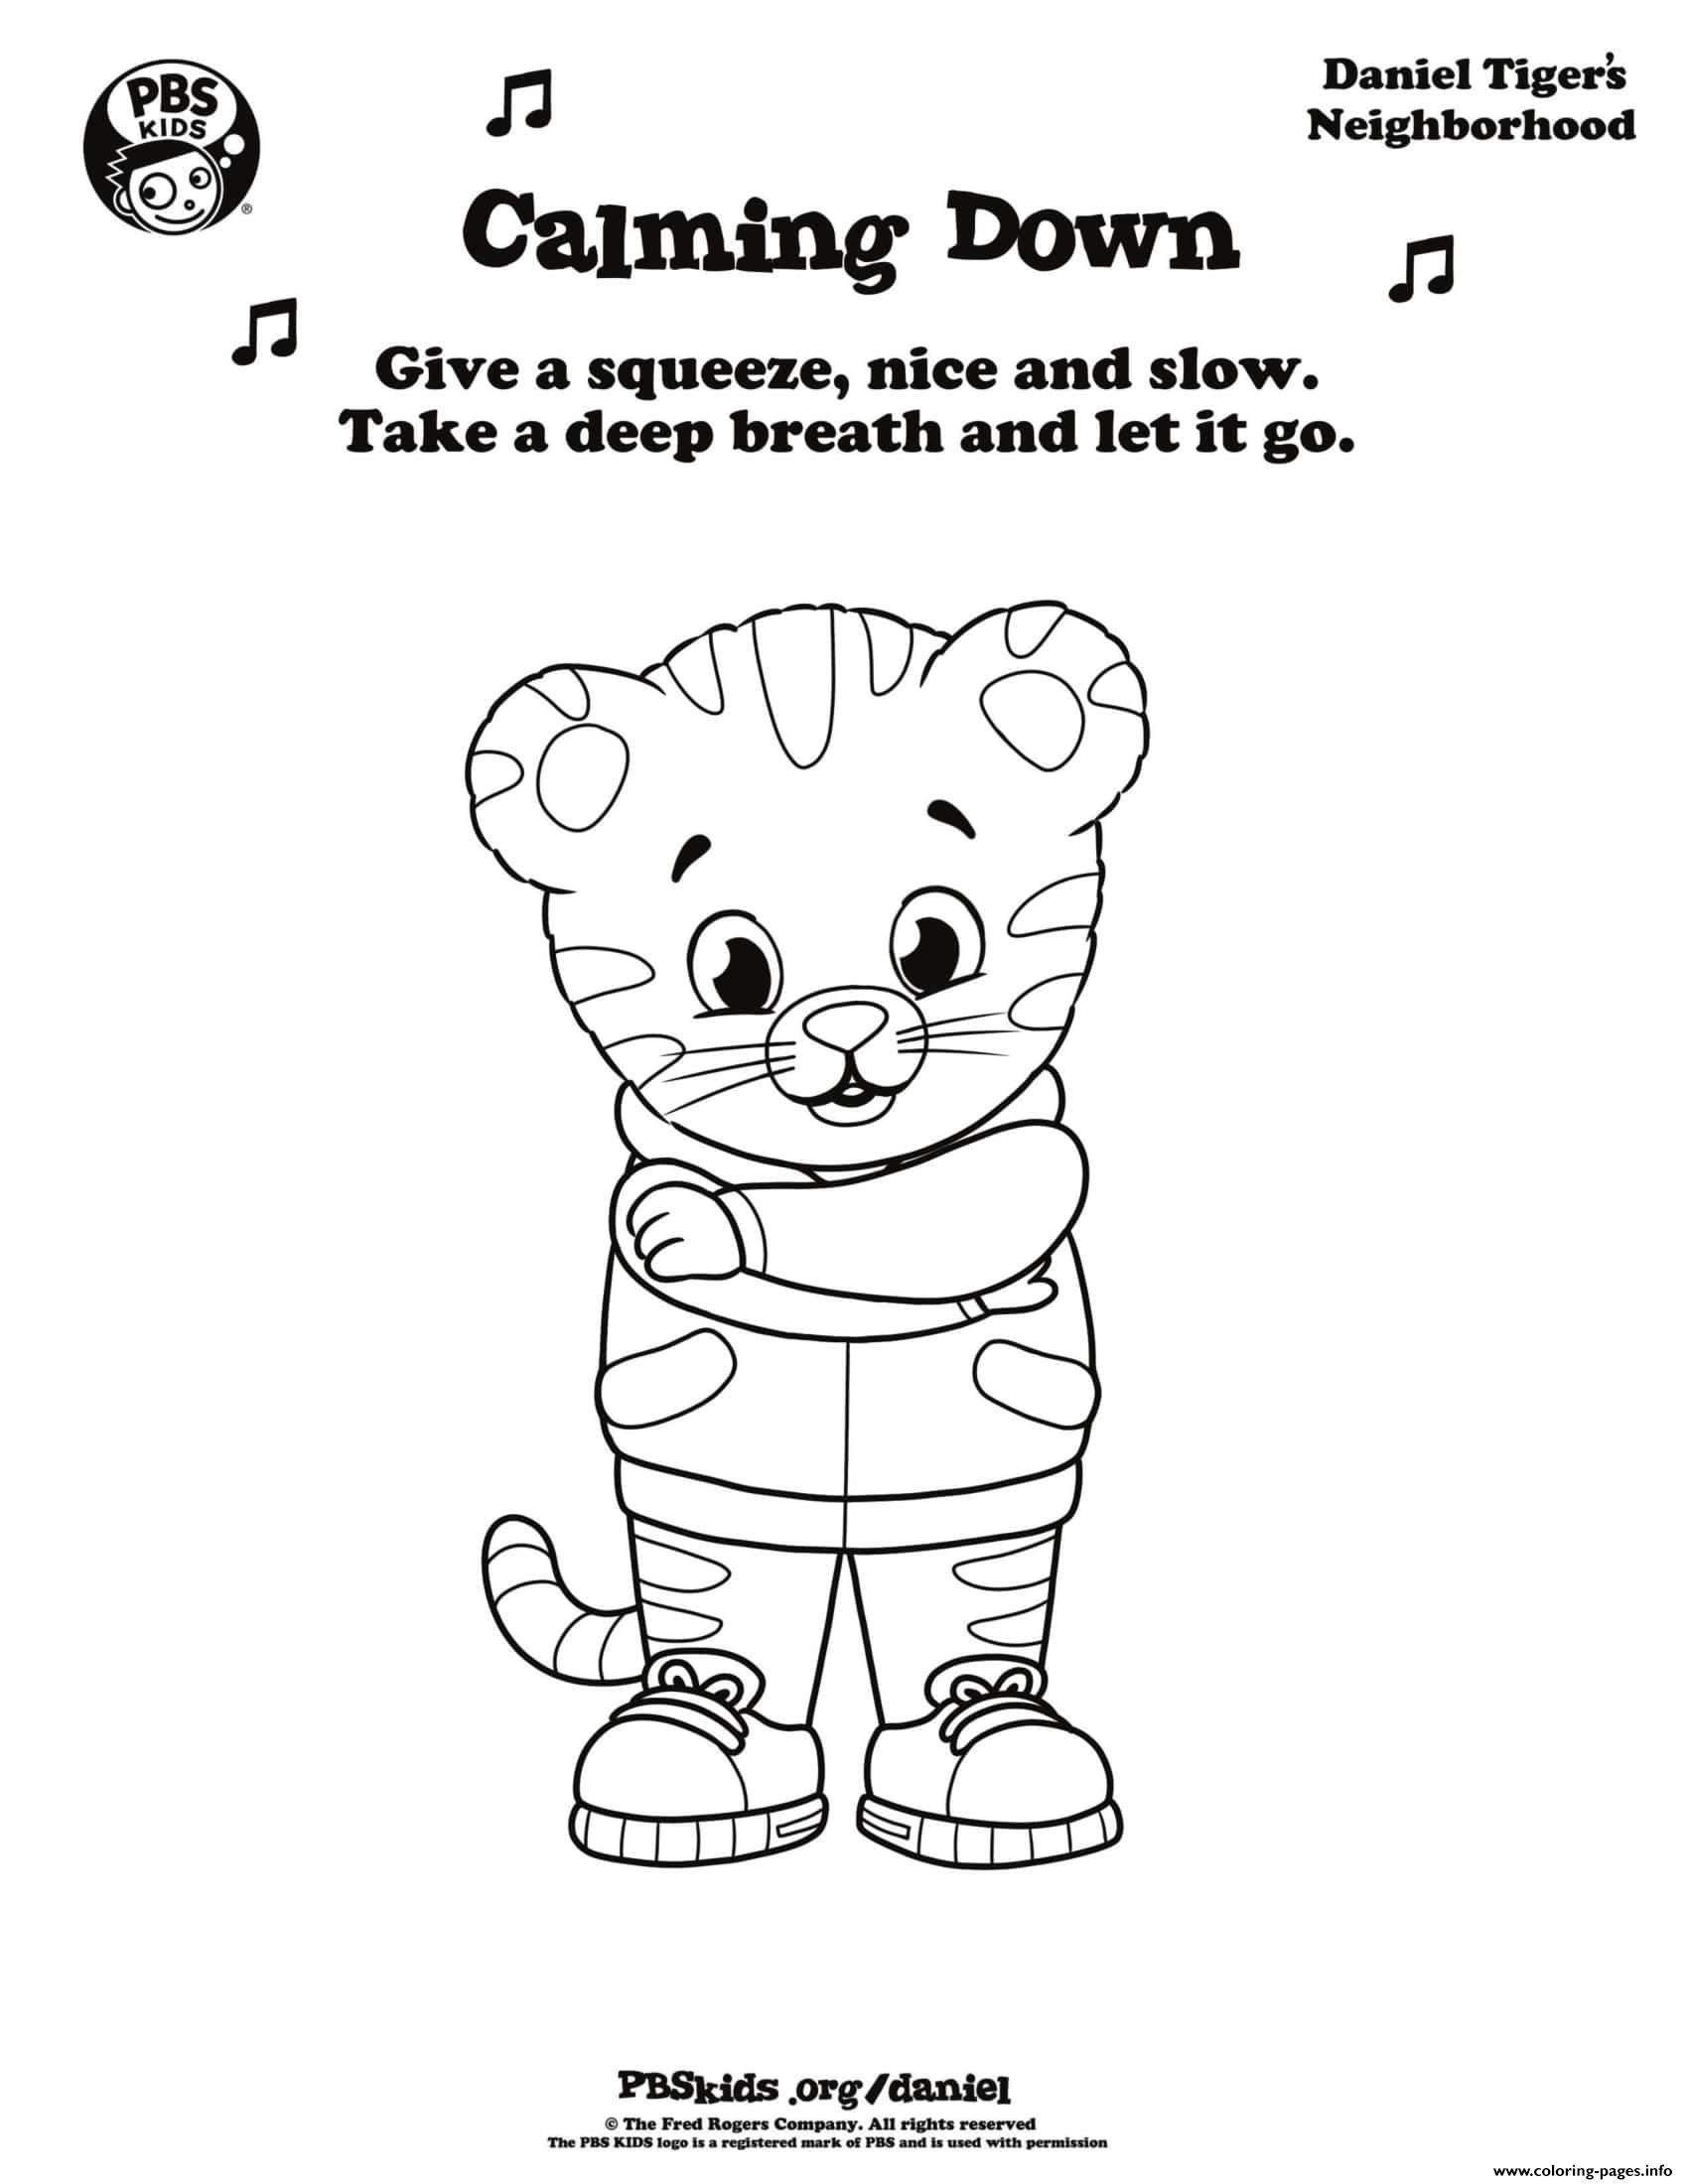 image about Daniel Tiger Coloring Pages Printable referred to as Comforting Down Daniel Tiger Min Coloring Internet pages Printable